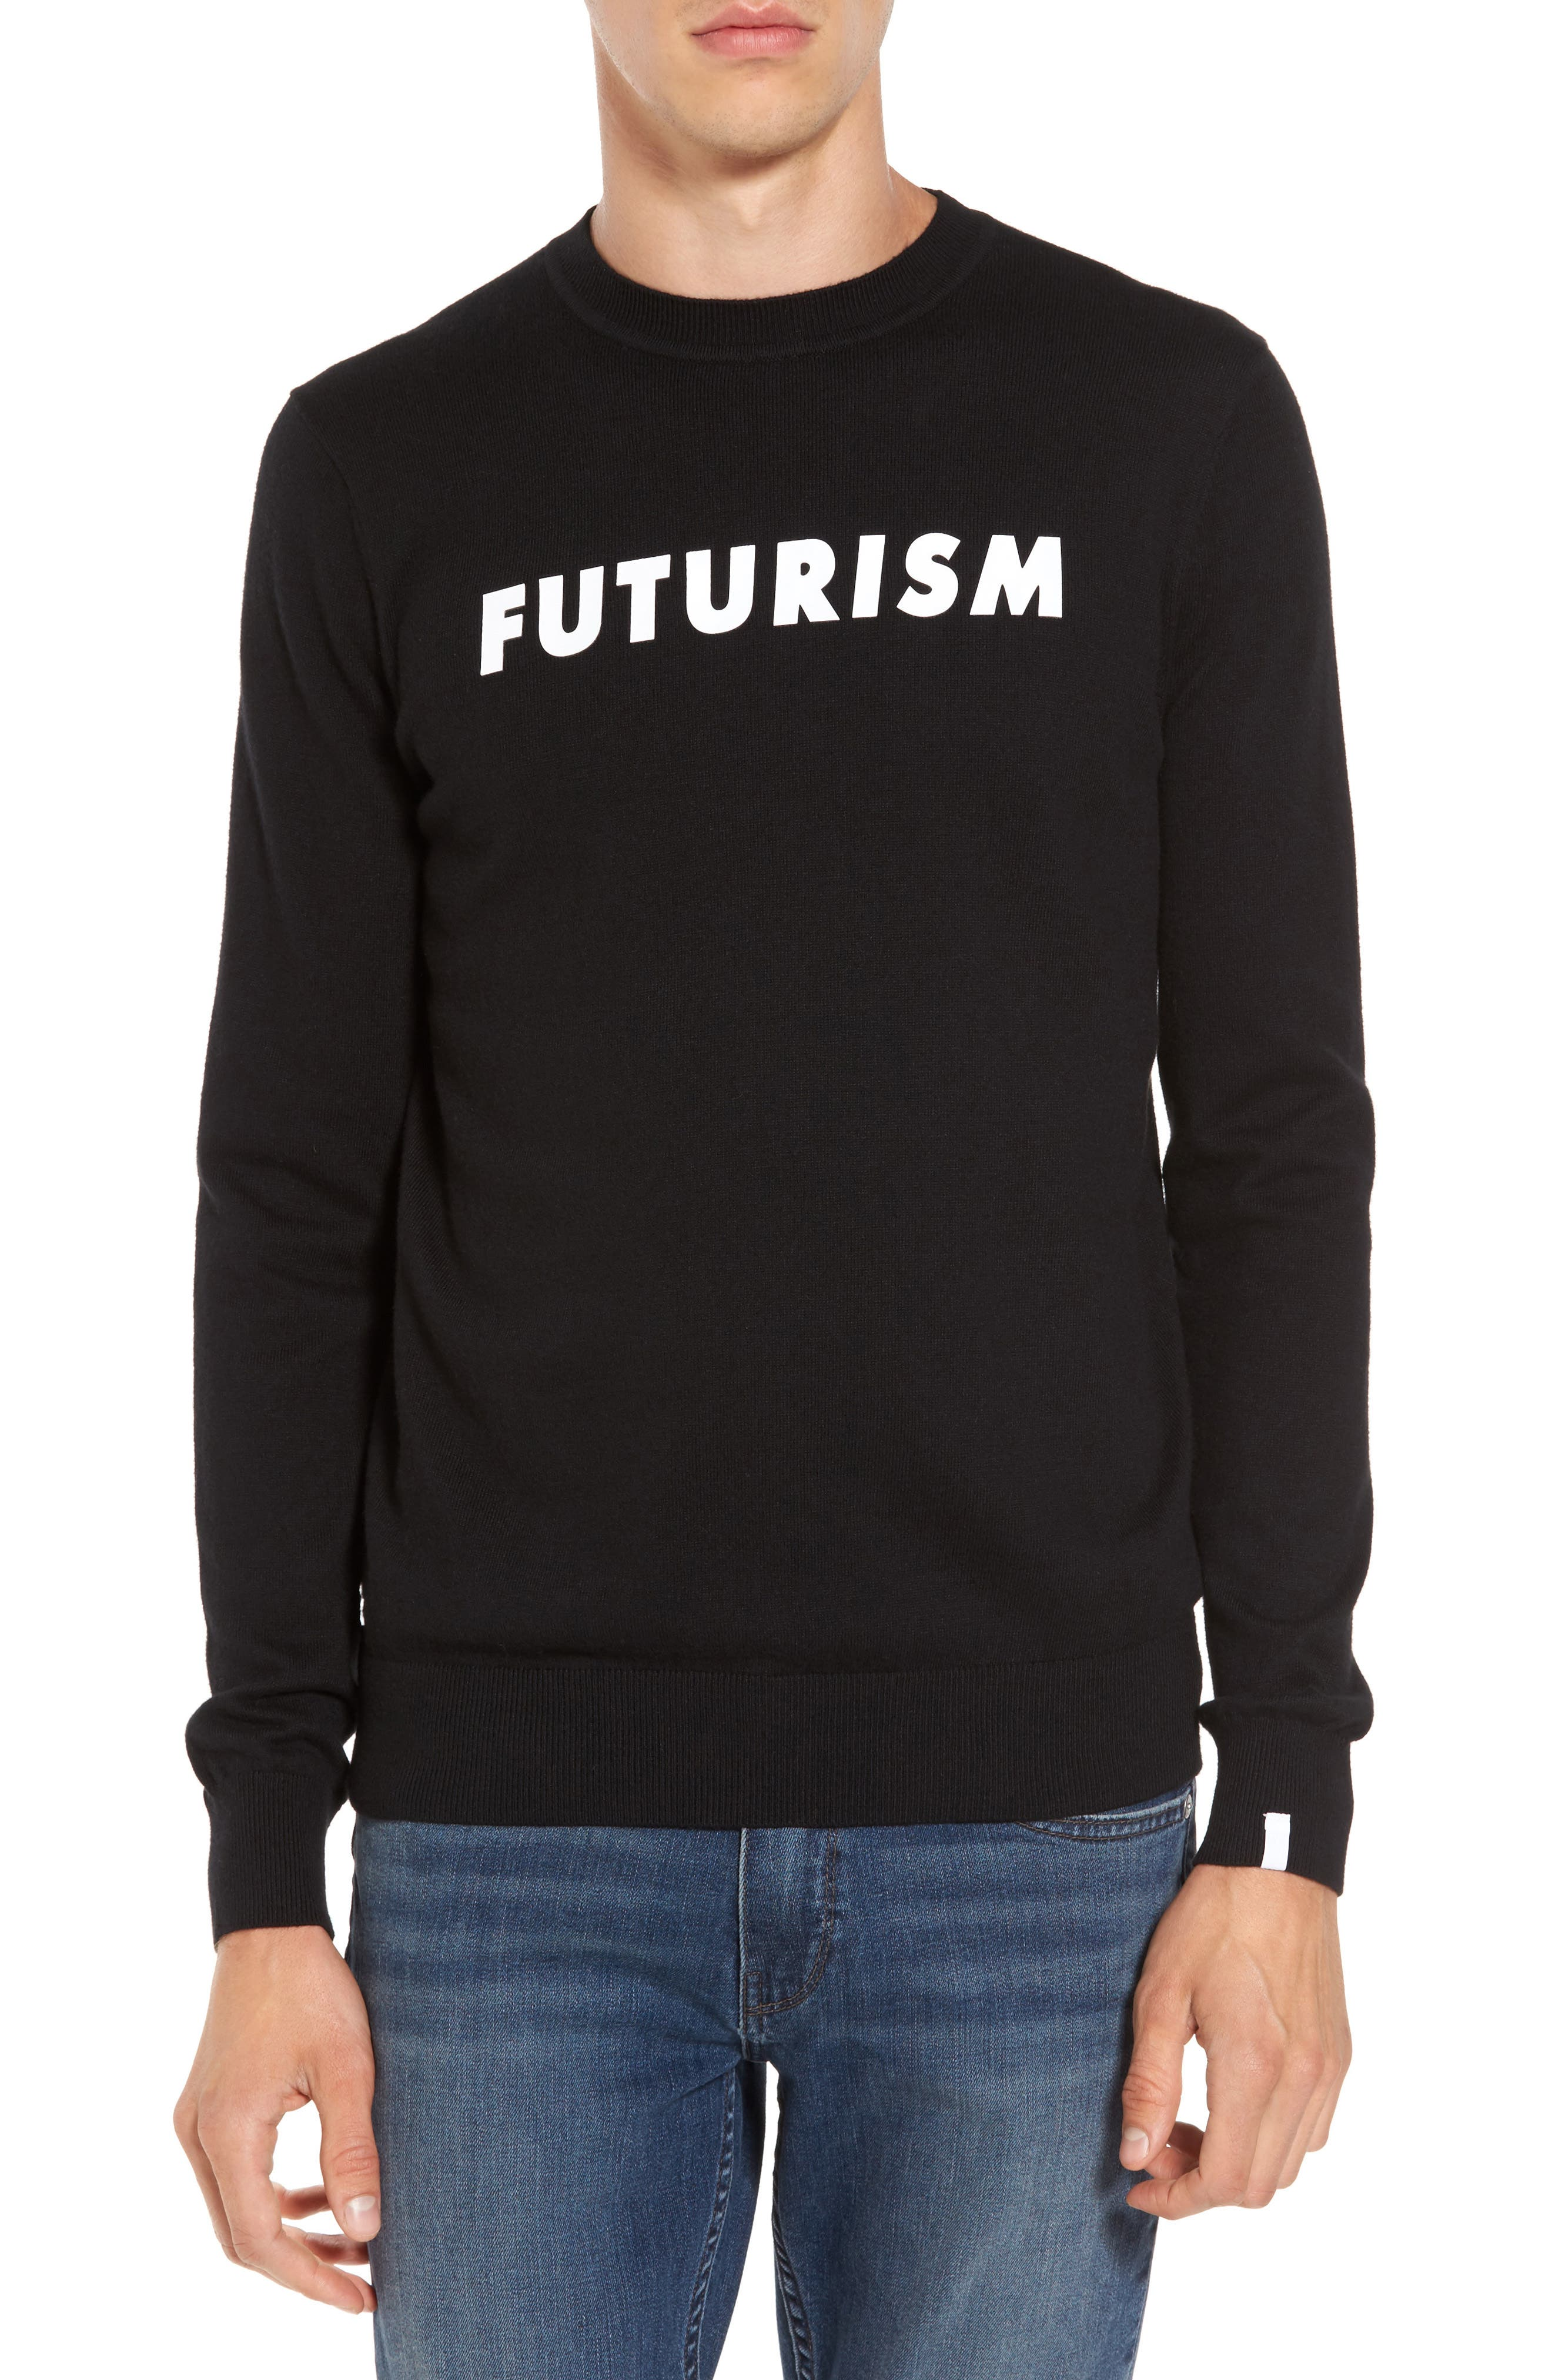 Futurism Graphic Sweater,                             Main thumbnail 1, color,                             001